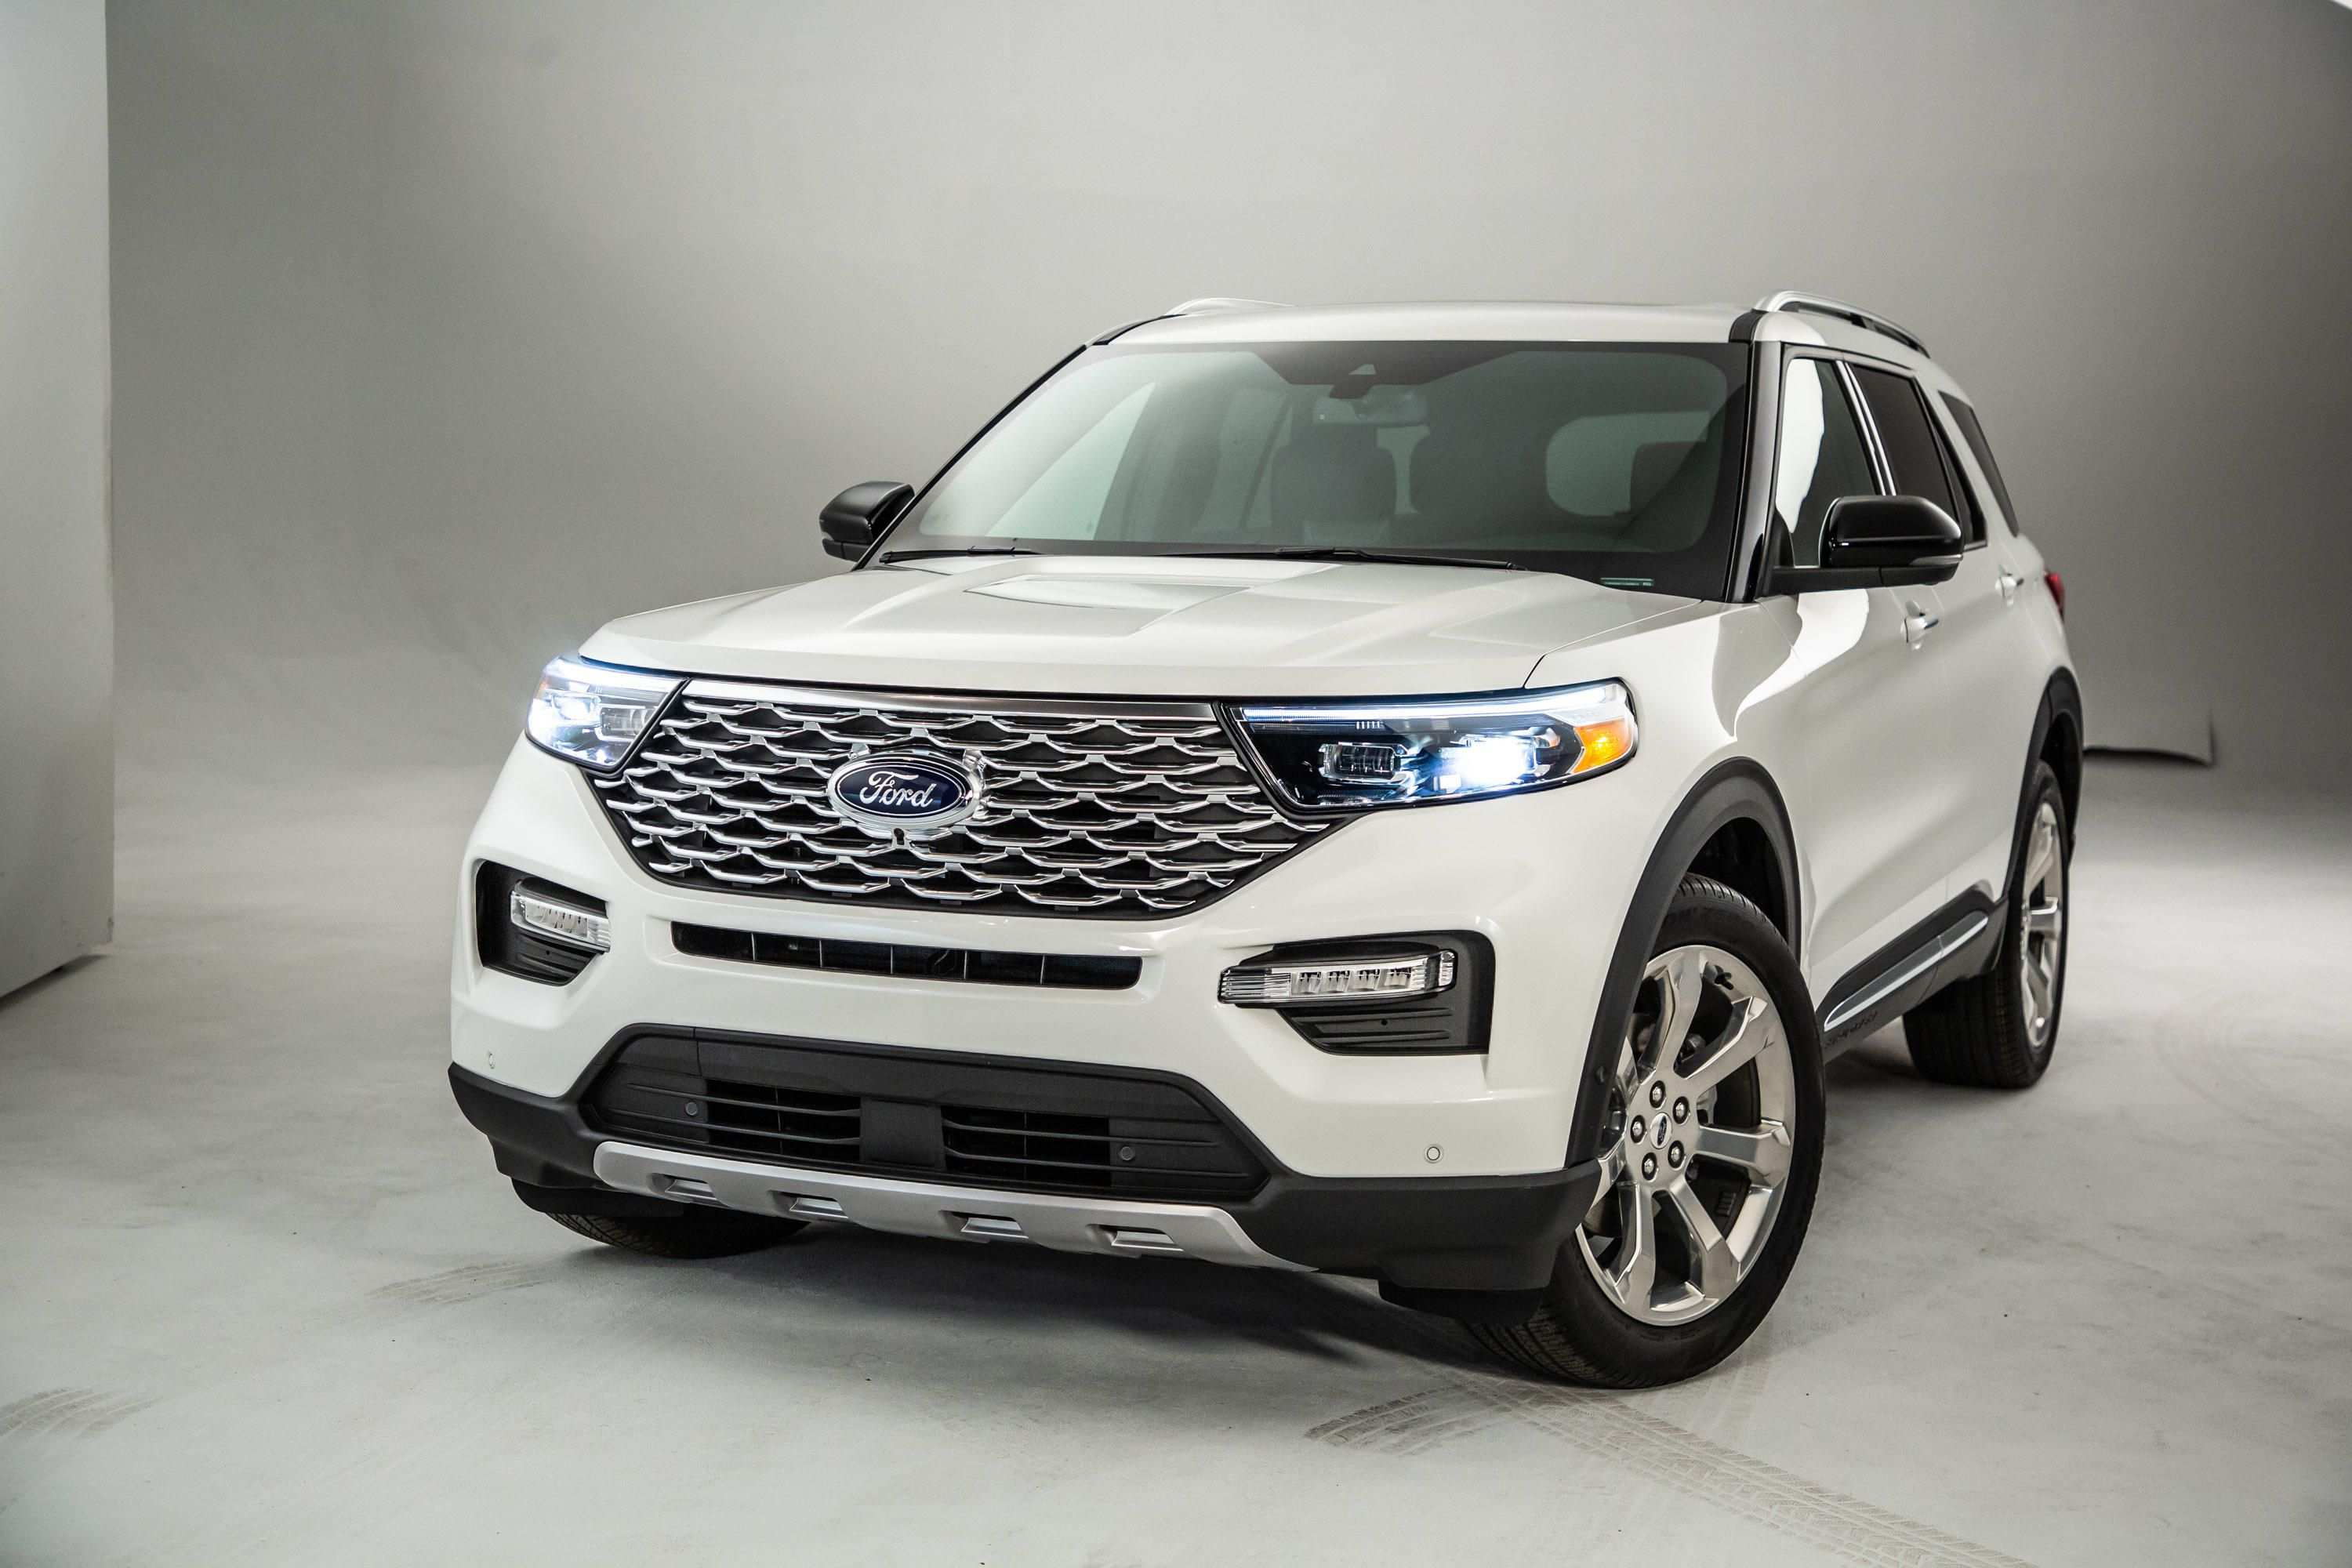 90 The 2020 Chevy Traverse Specs And Review